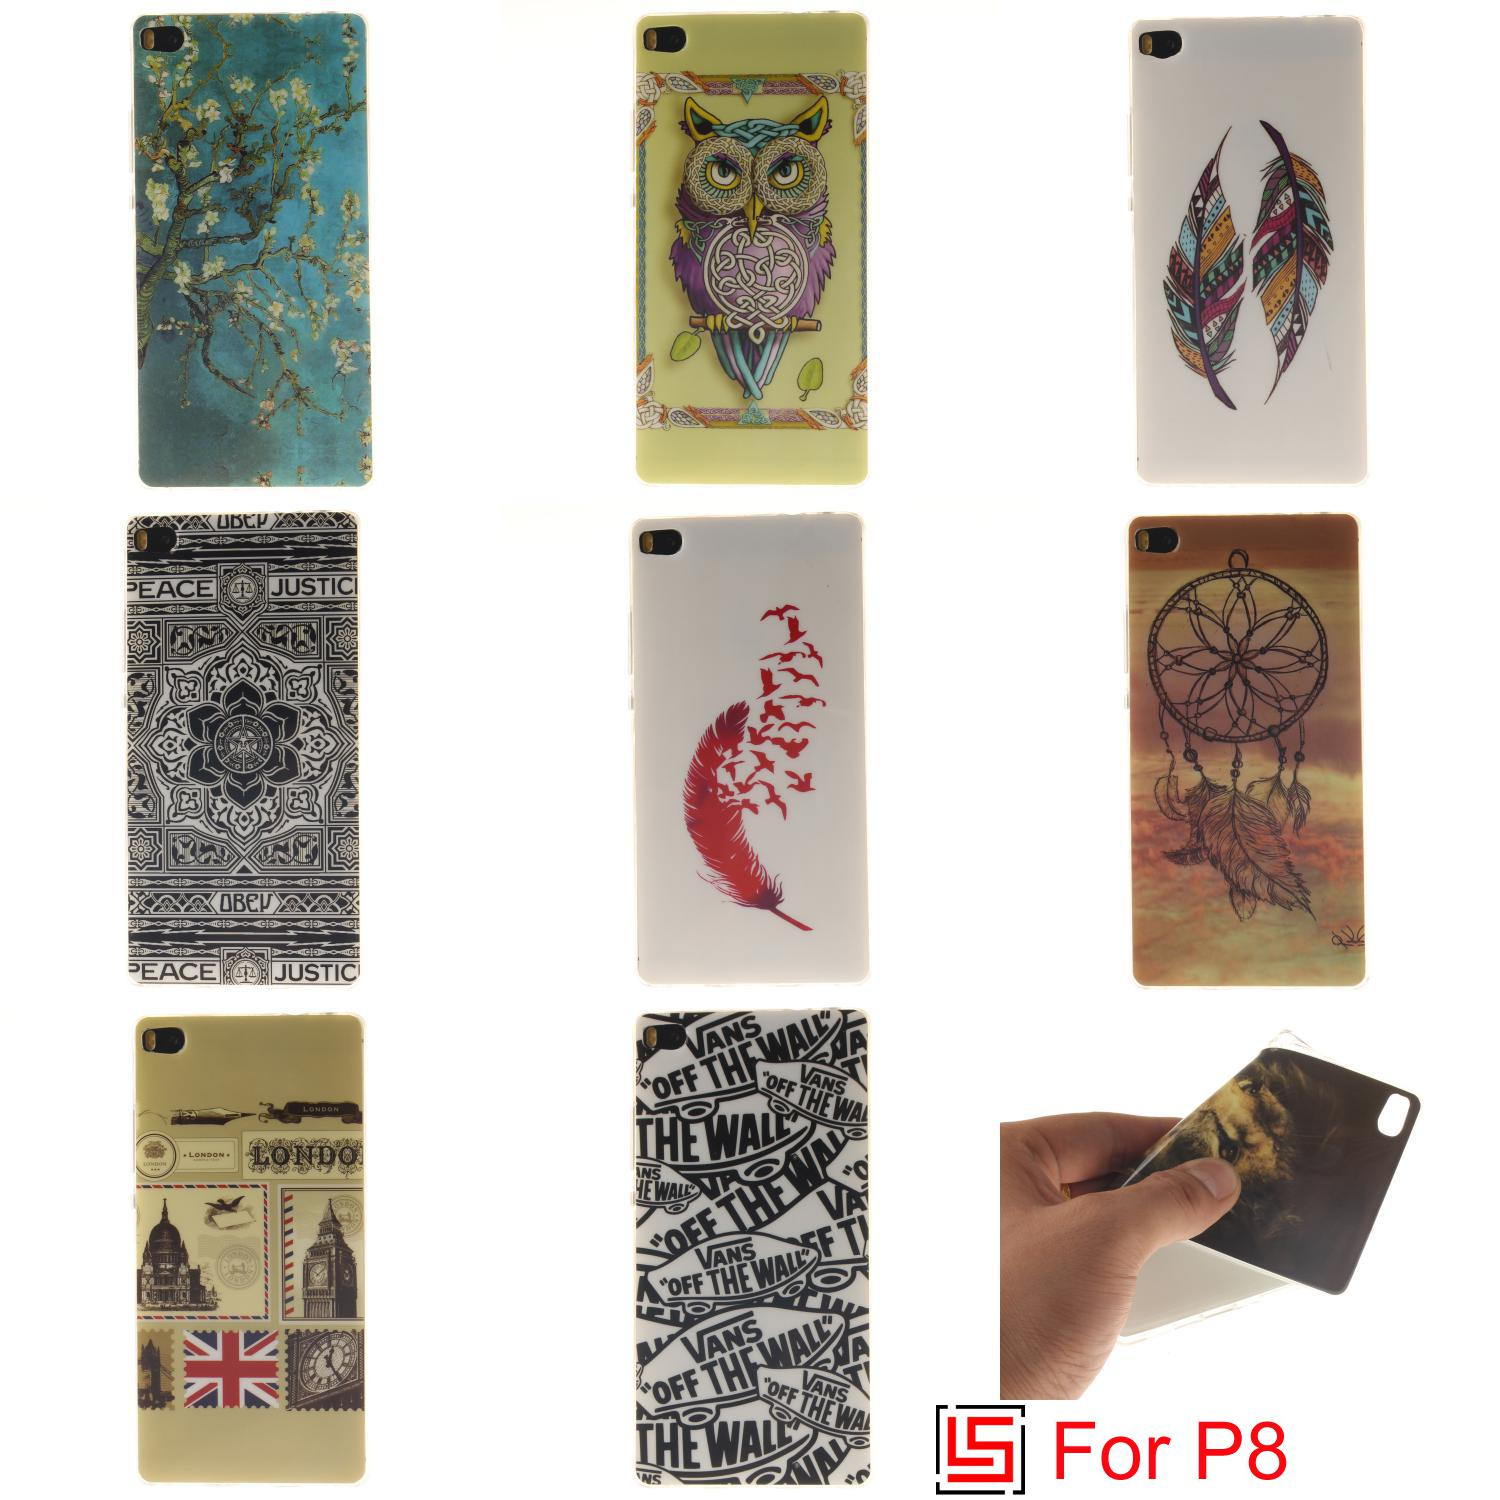 Cheap Best Ultra Thin TPU Silicone Soft Phone Cell Case etui caso Cover Cove Bag For Huawei P8 Dandelion Flower Dreamcatcher